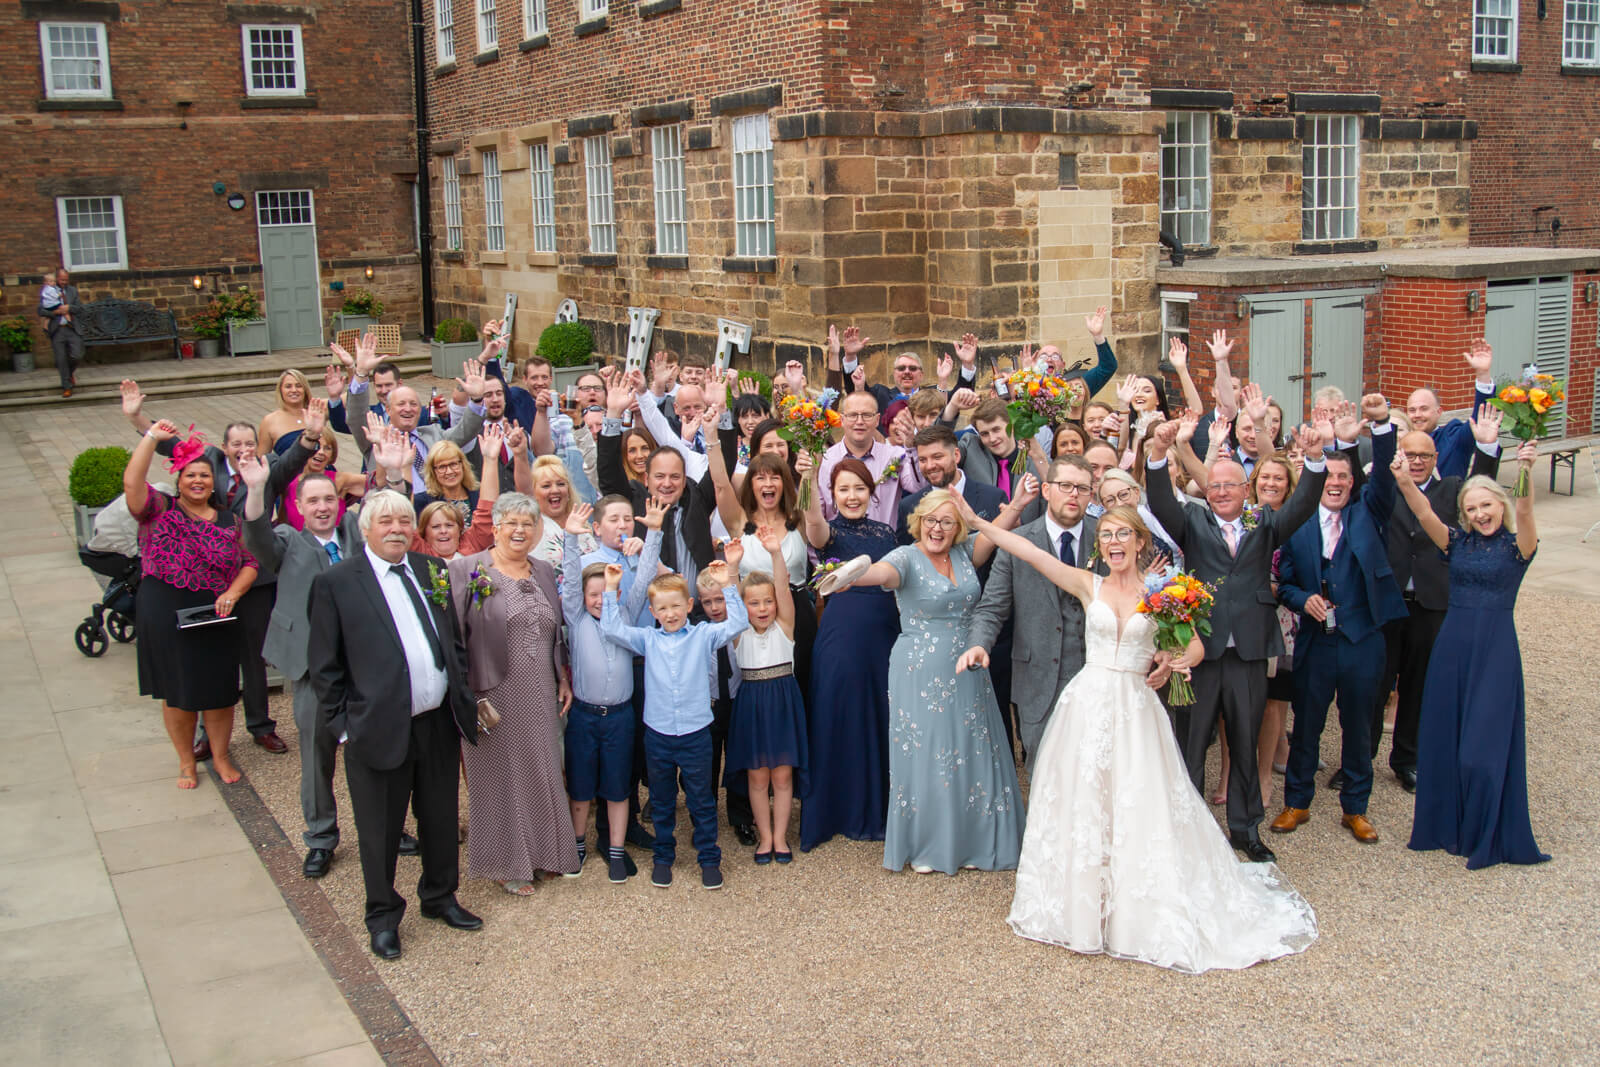 All the wedding guests stand in a large group and cheer from the courtyard of the west mill derby